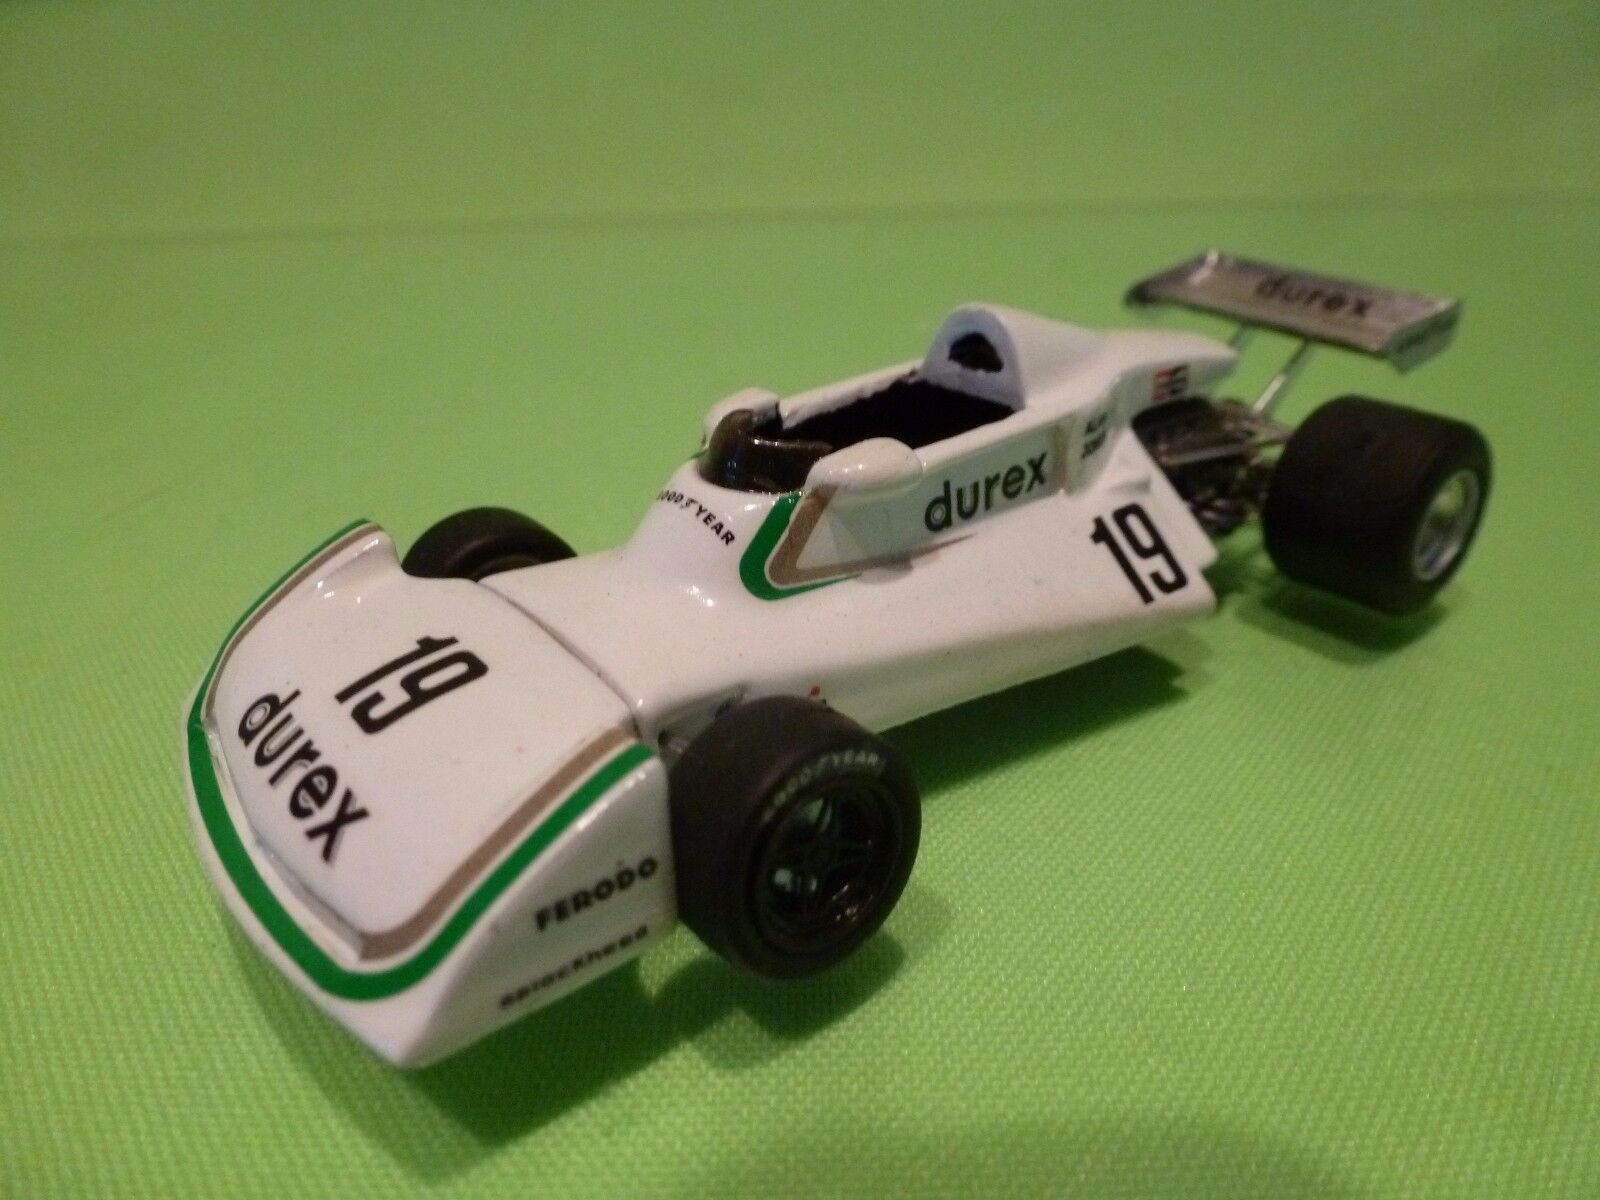 TRON KIT (built) - SURTEES  TS19 - DUREX ALAN JONES  - F1 1 43 - NICE CONDITION